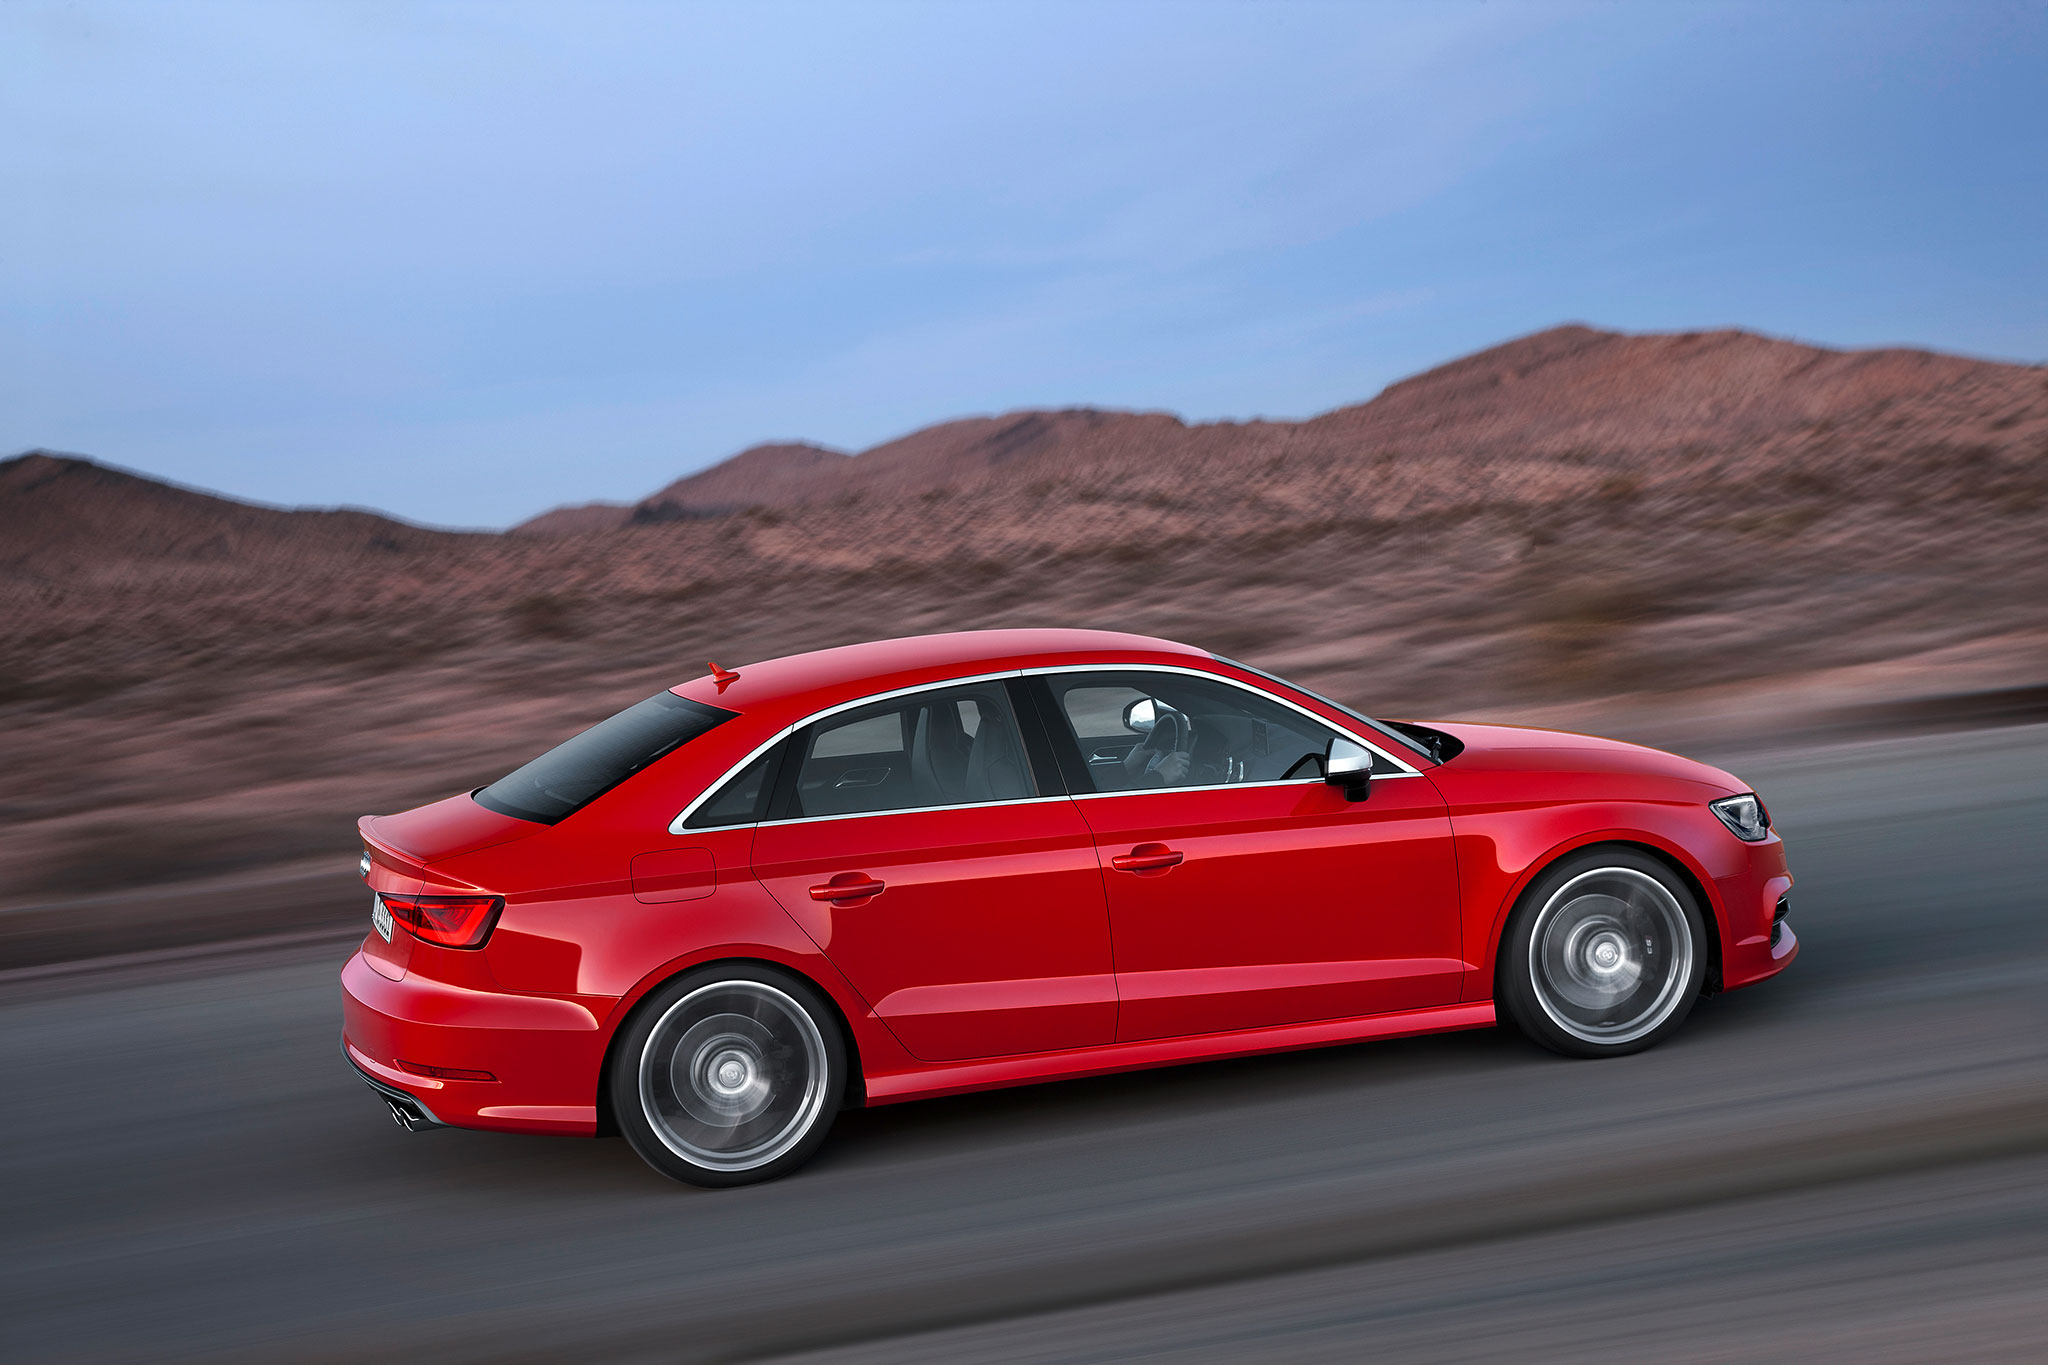 tdi pricey audi sedan article news but photo notes powerful autoweek car review reviews